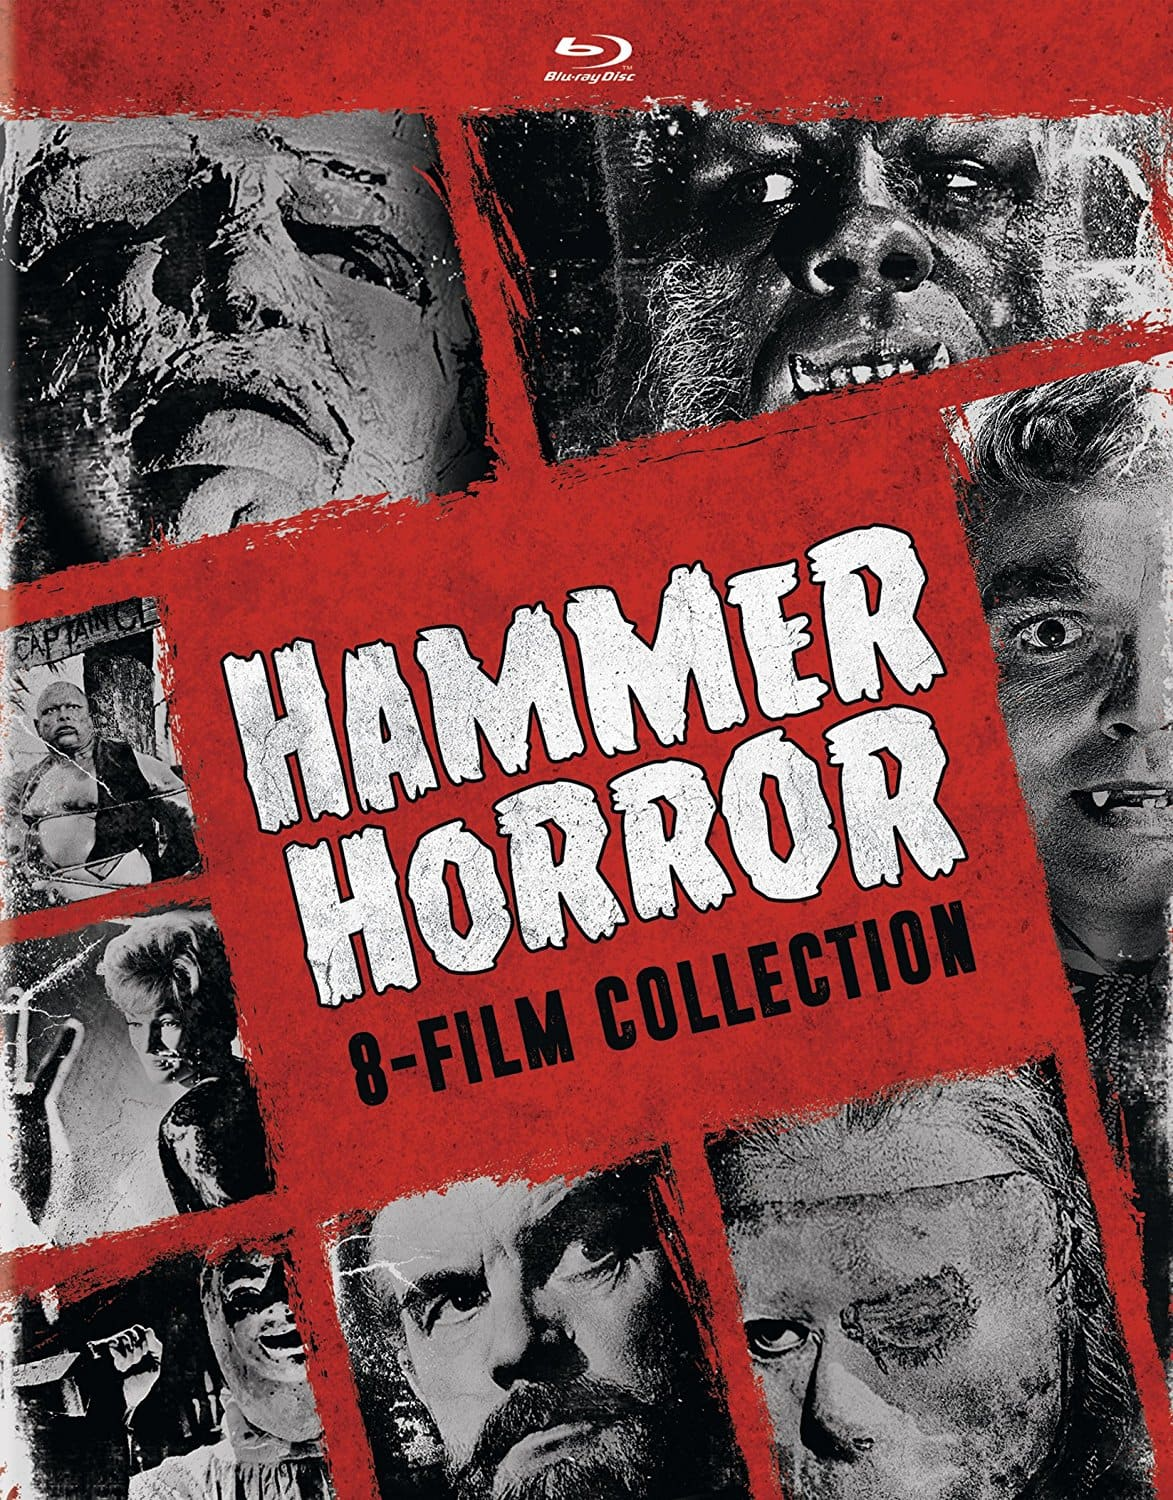 Hammer Horror 8-Film Box Set Collection: Brides of Dracula, Night Creatures, The Evil of Dr. Frankenstein, Phantom of the Opera (Blu-Ray) $17.49 via Amazon $17.48